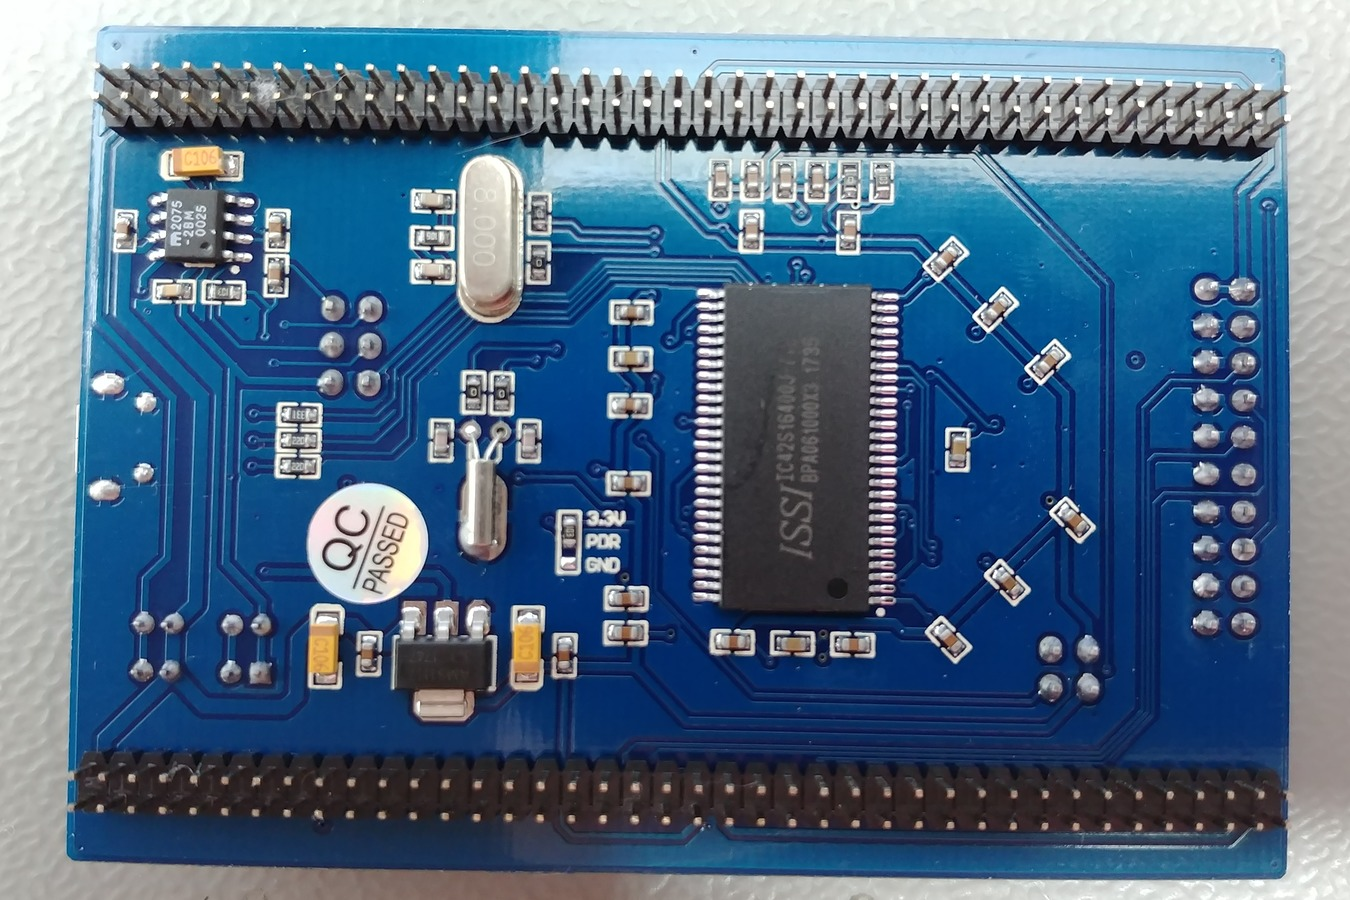 WaveShare Core746I board: Bottom view